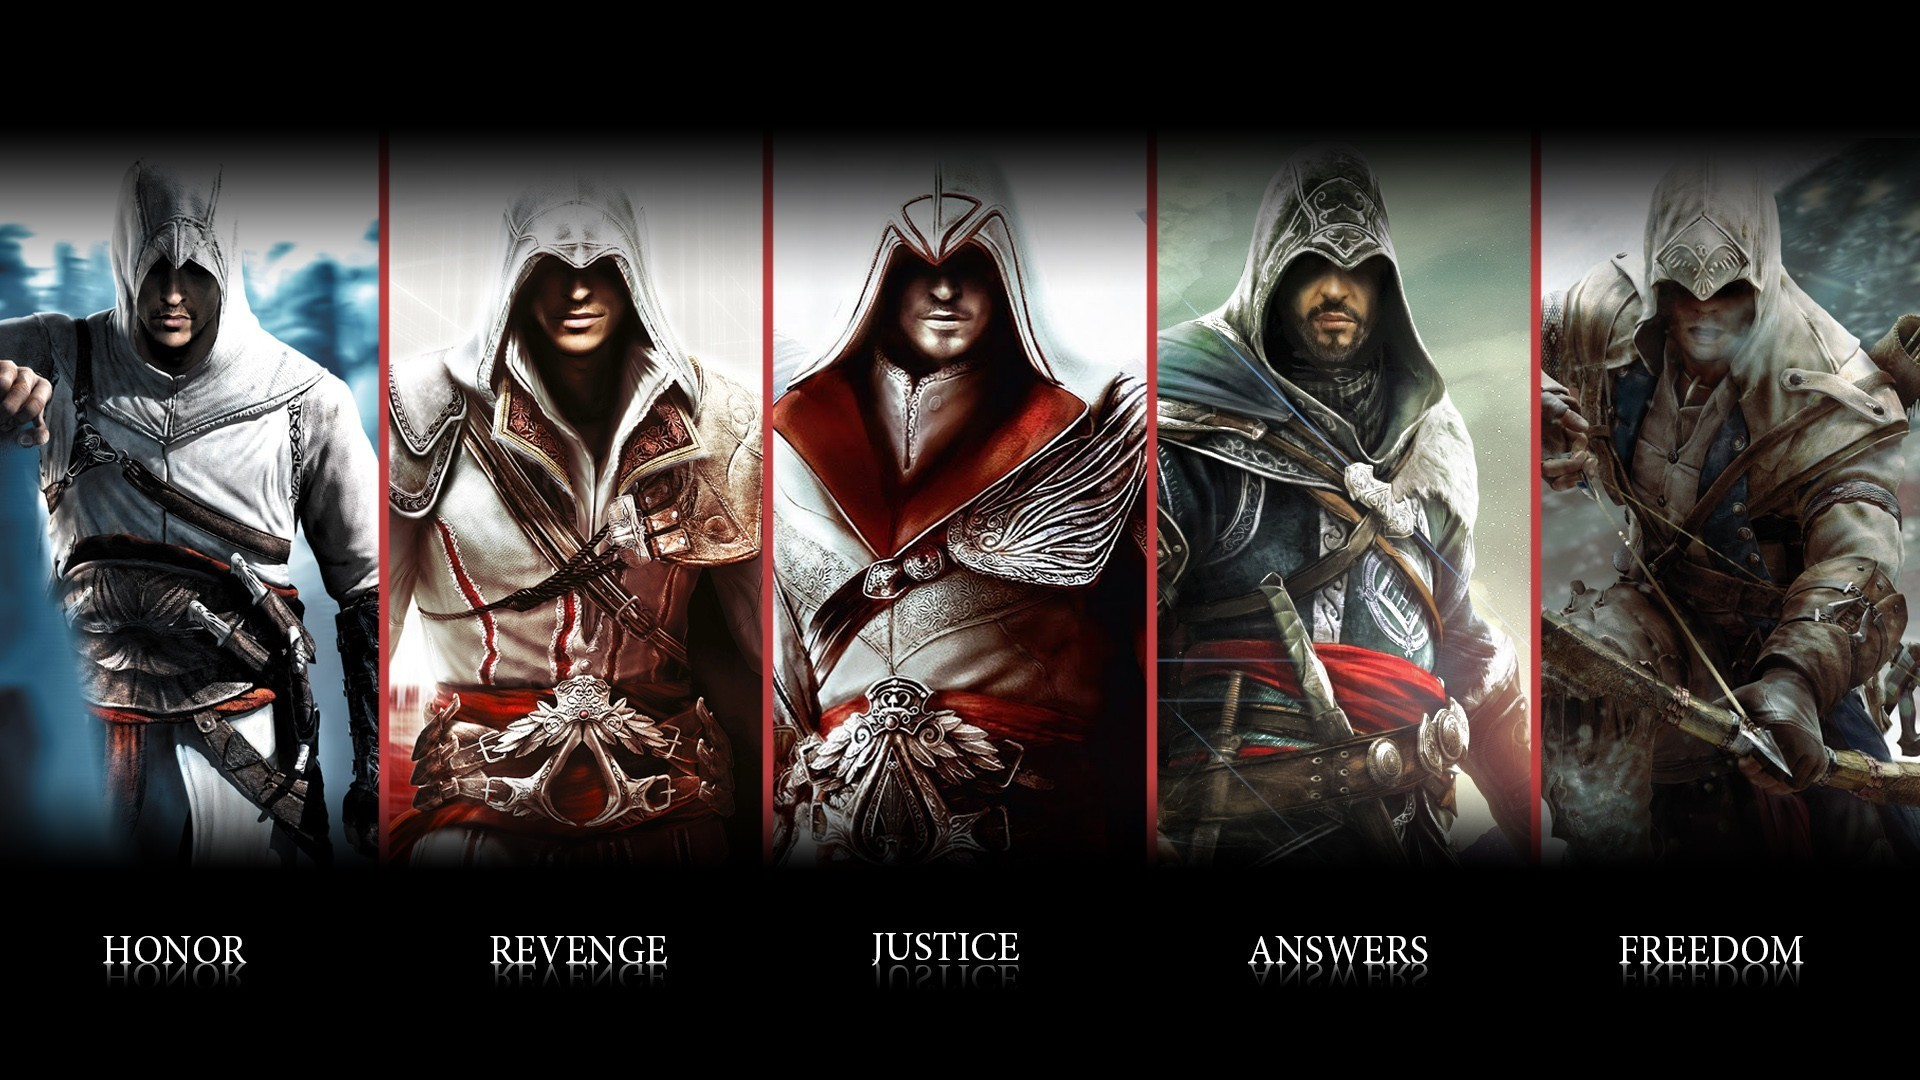 1920x1080 Assassins Creed Characters Image Wallpaper - http://www.gbwallpapers.com/